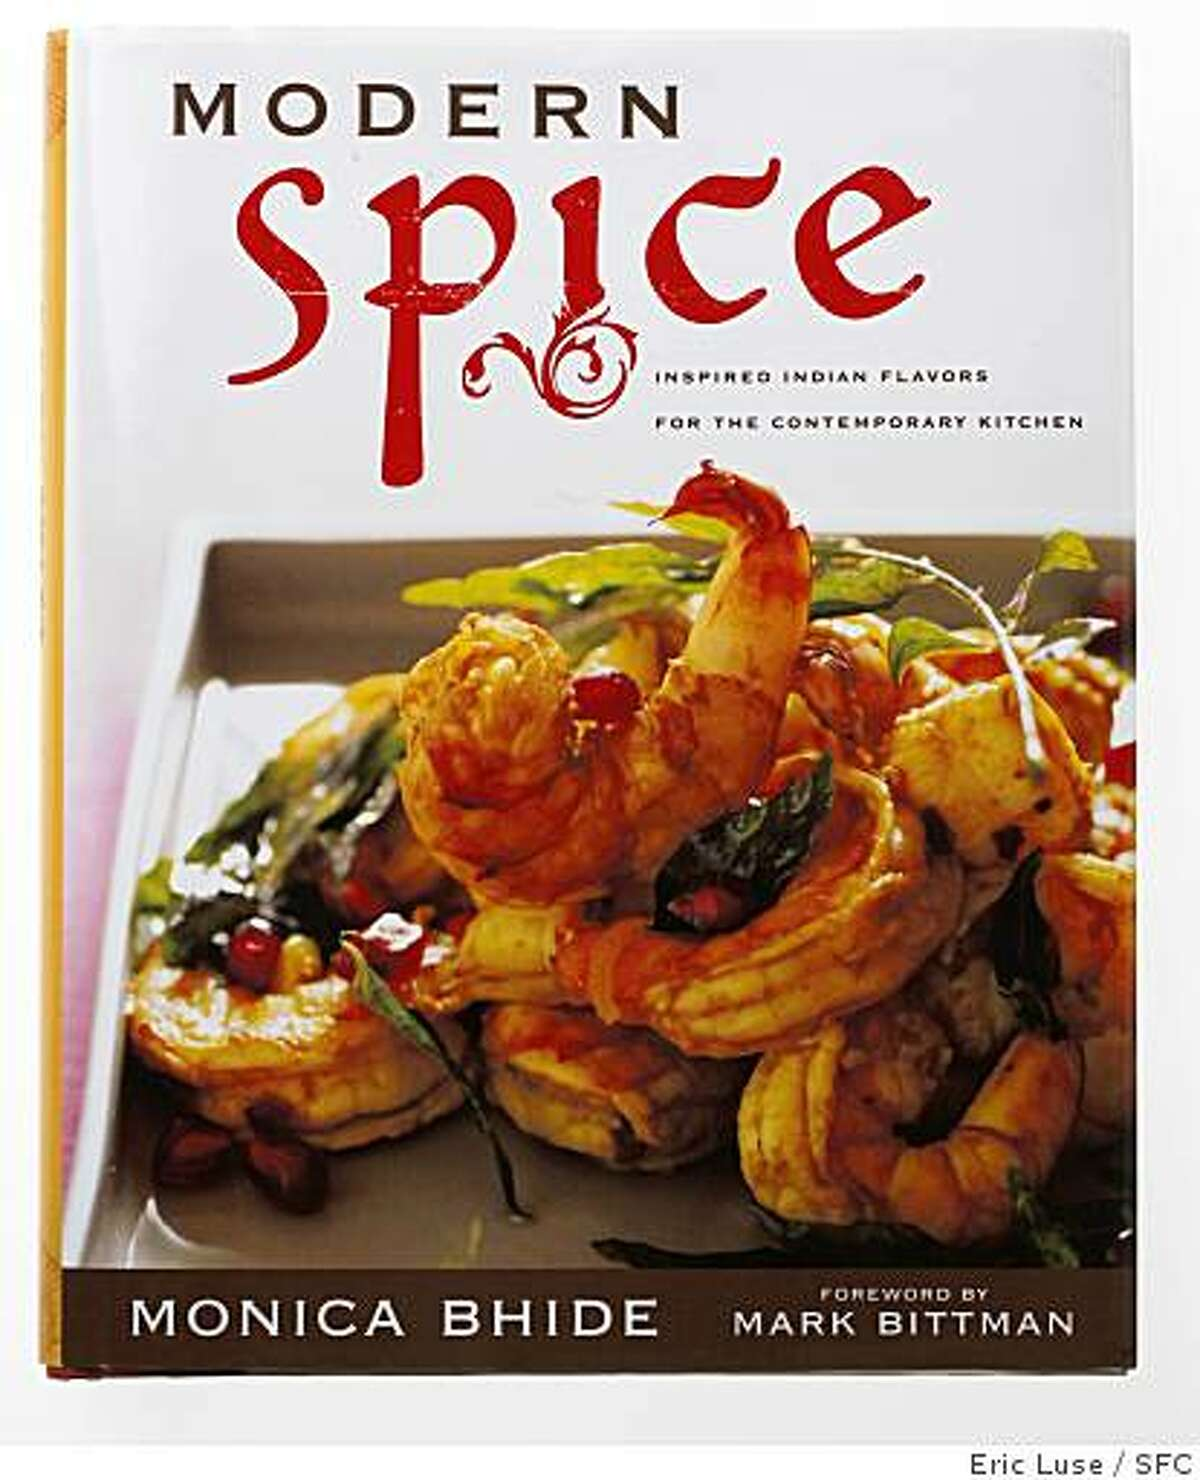 Modern Spice by Monica Bhide photographed on Wednesday, June 24, 2009.